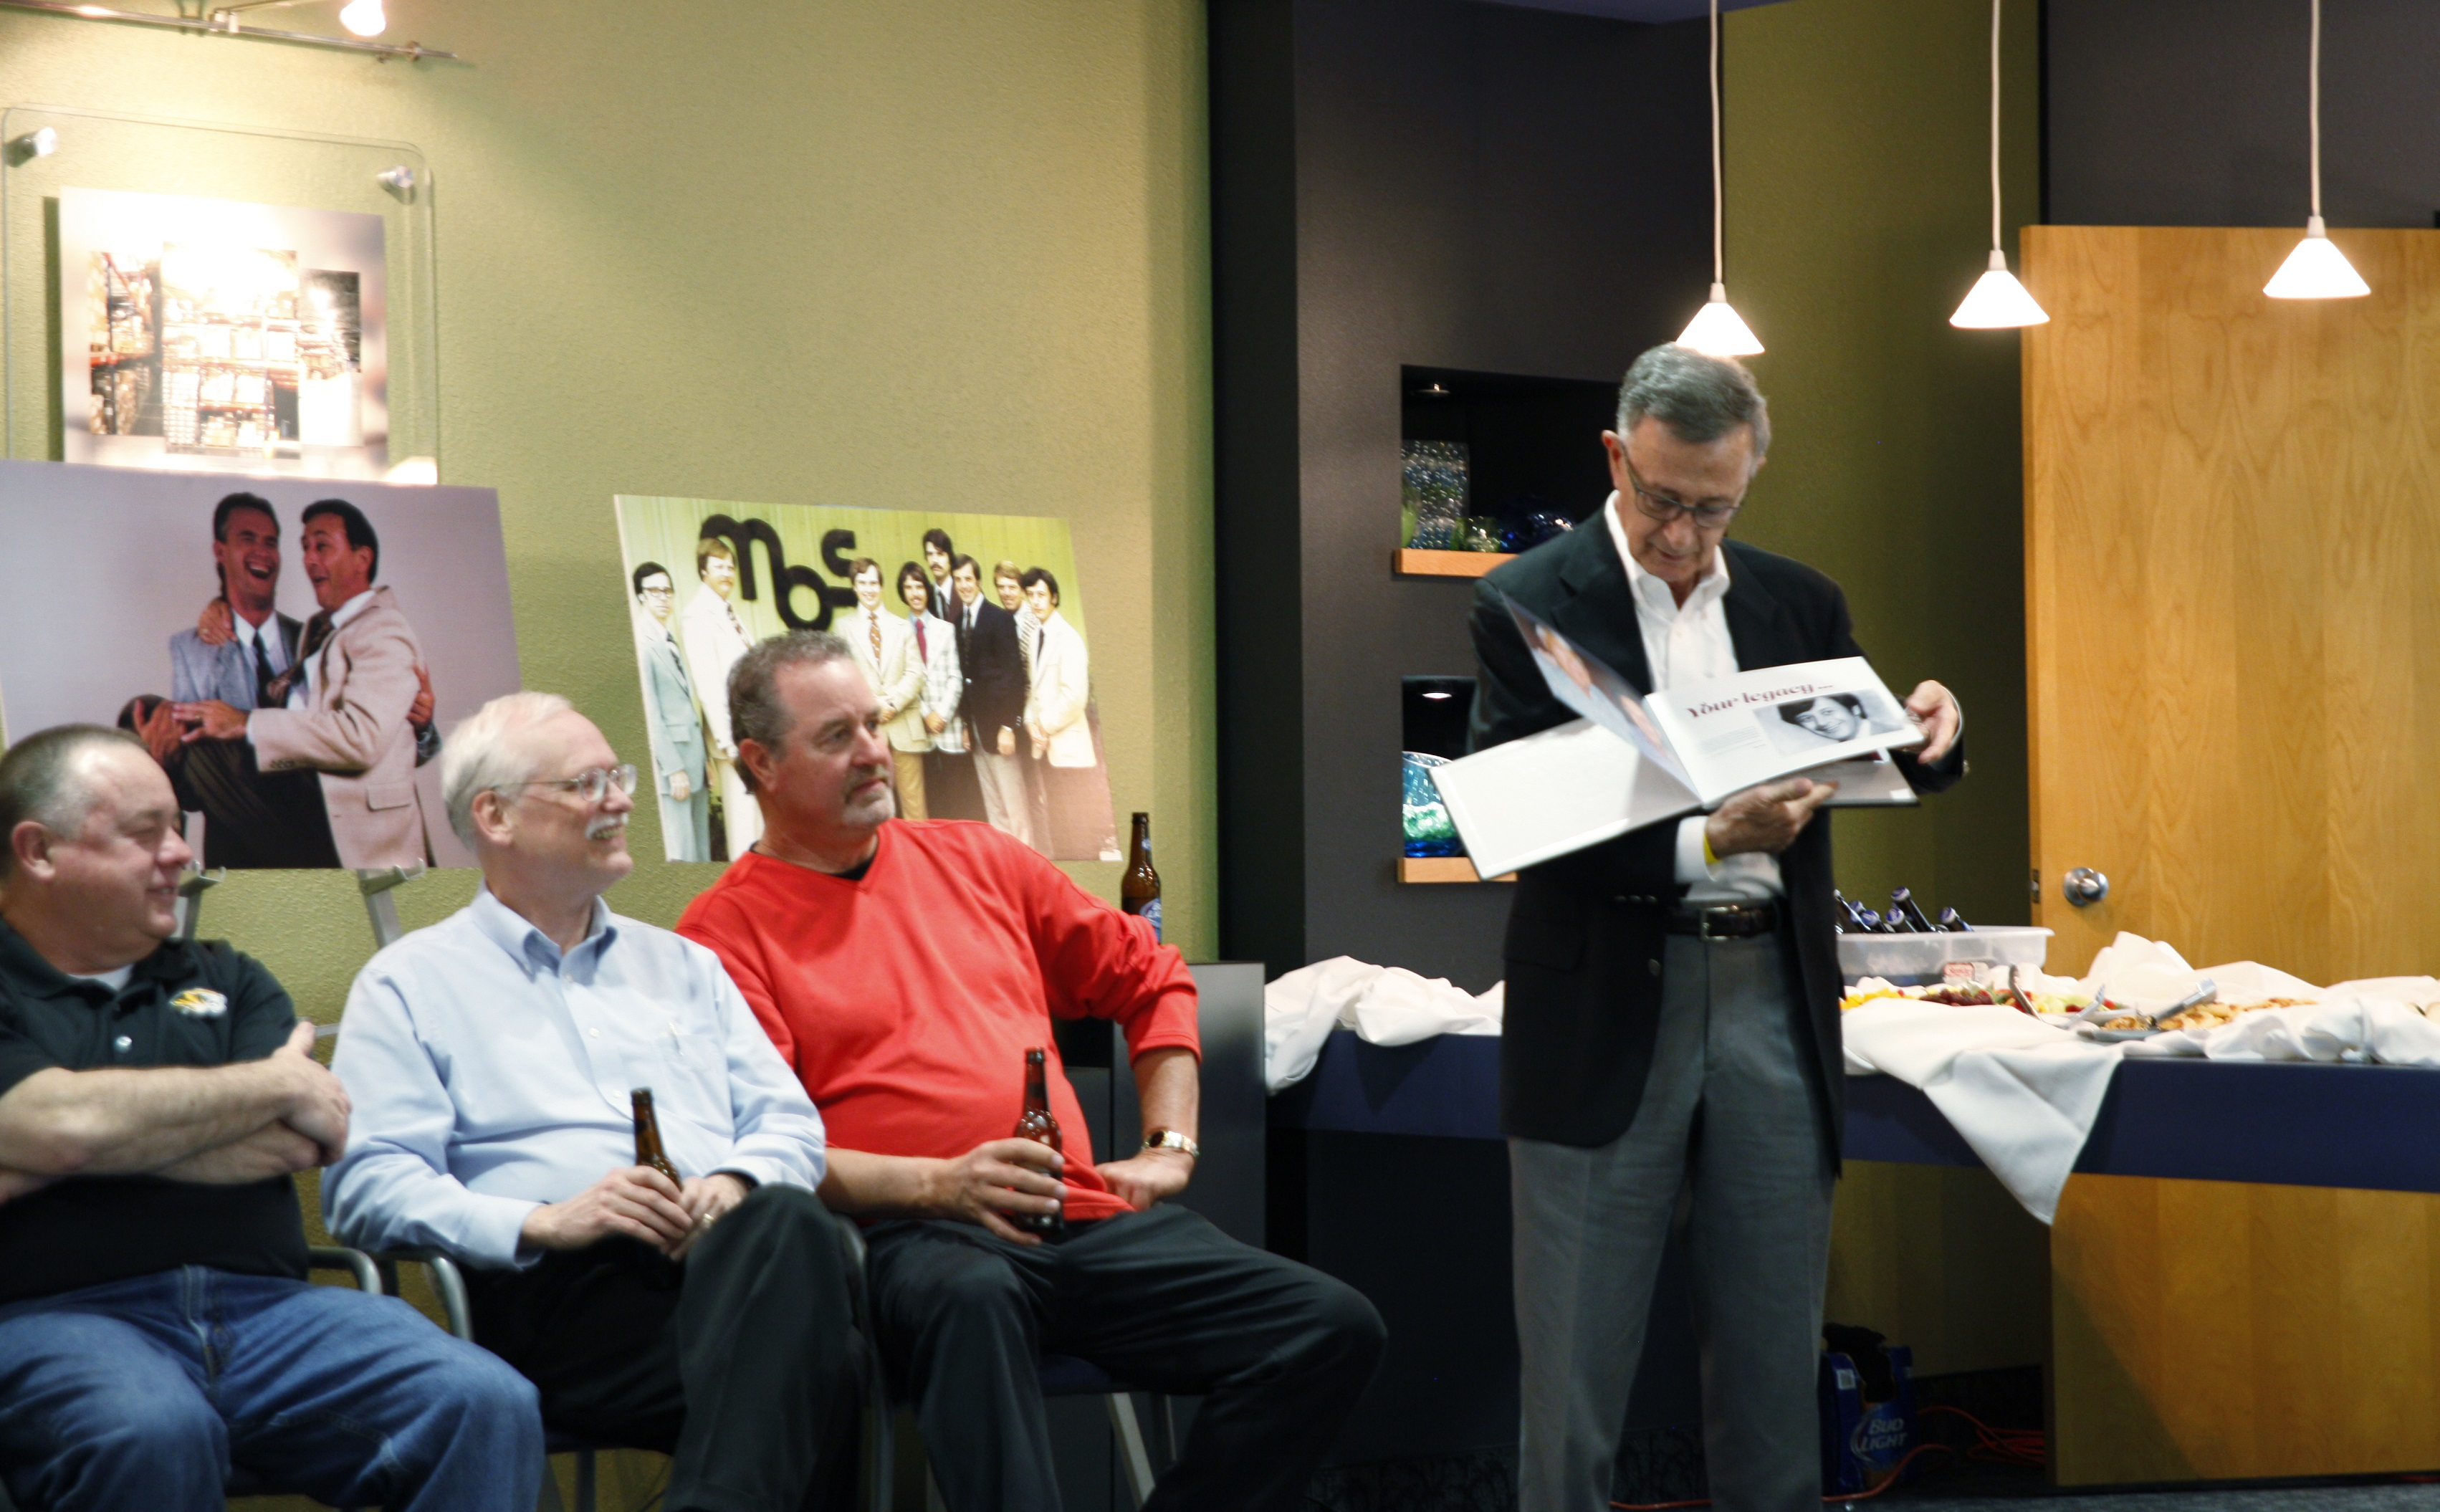 Steve Schwarz flips through a photo album presented to him at his retirement reception March 16. After 37 years with MBS, Schwarz retired in January.